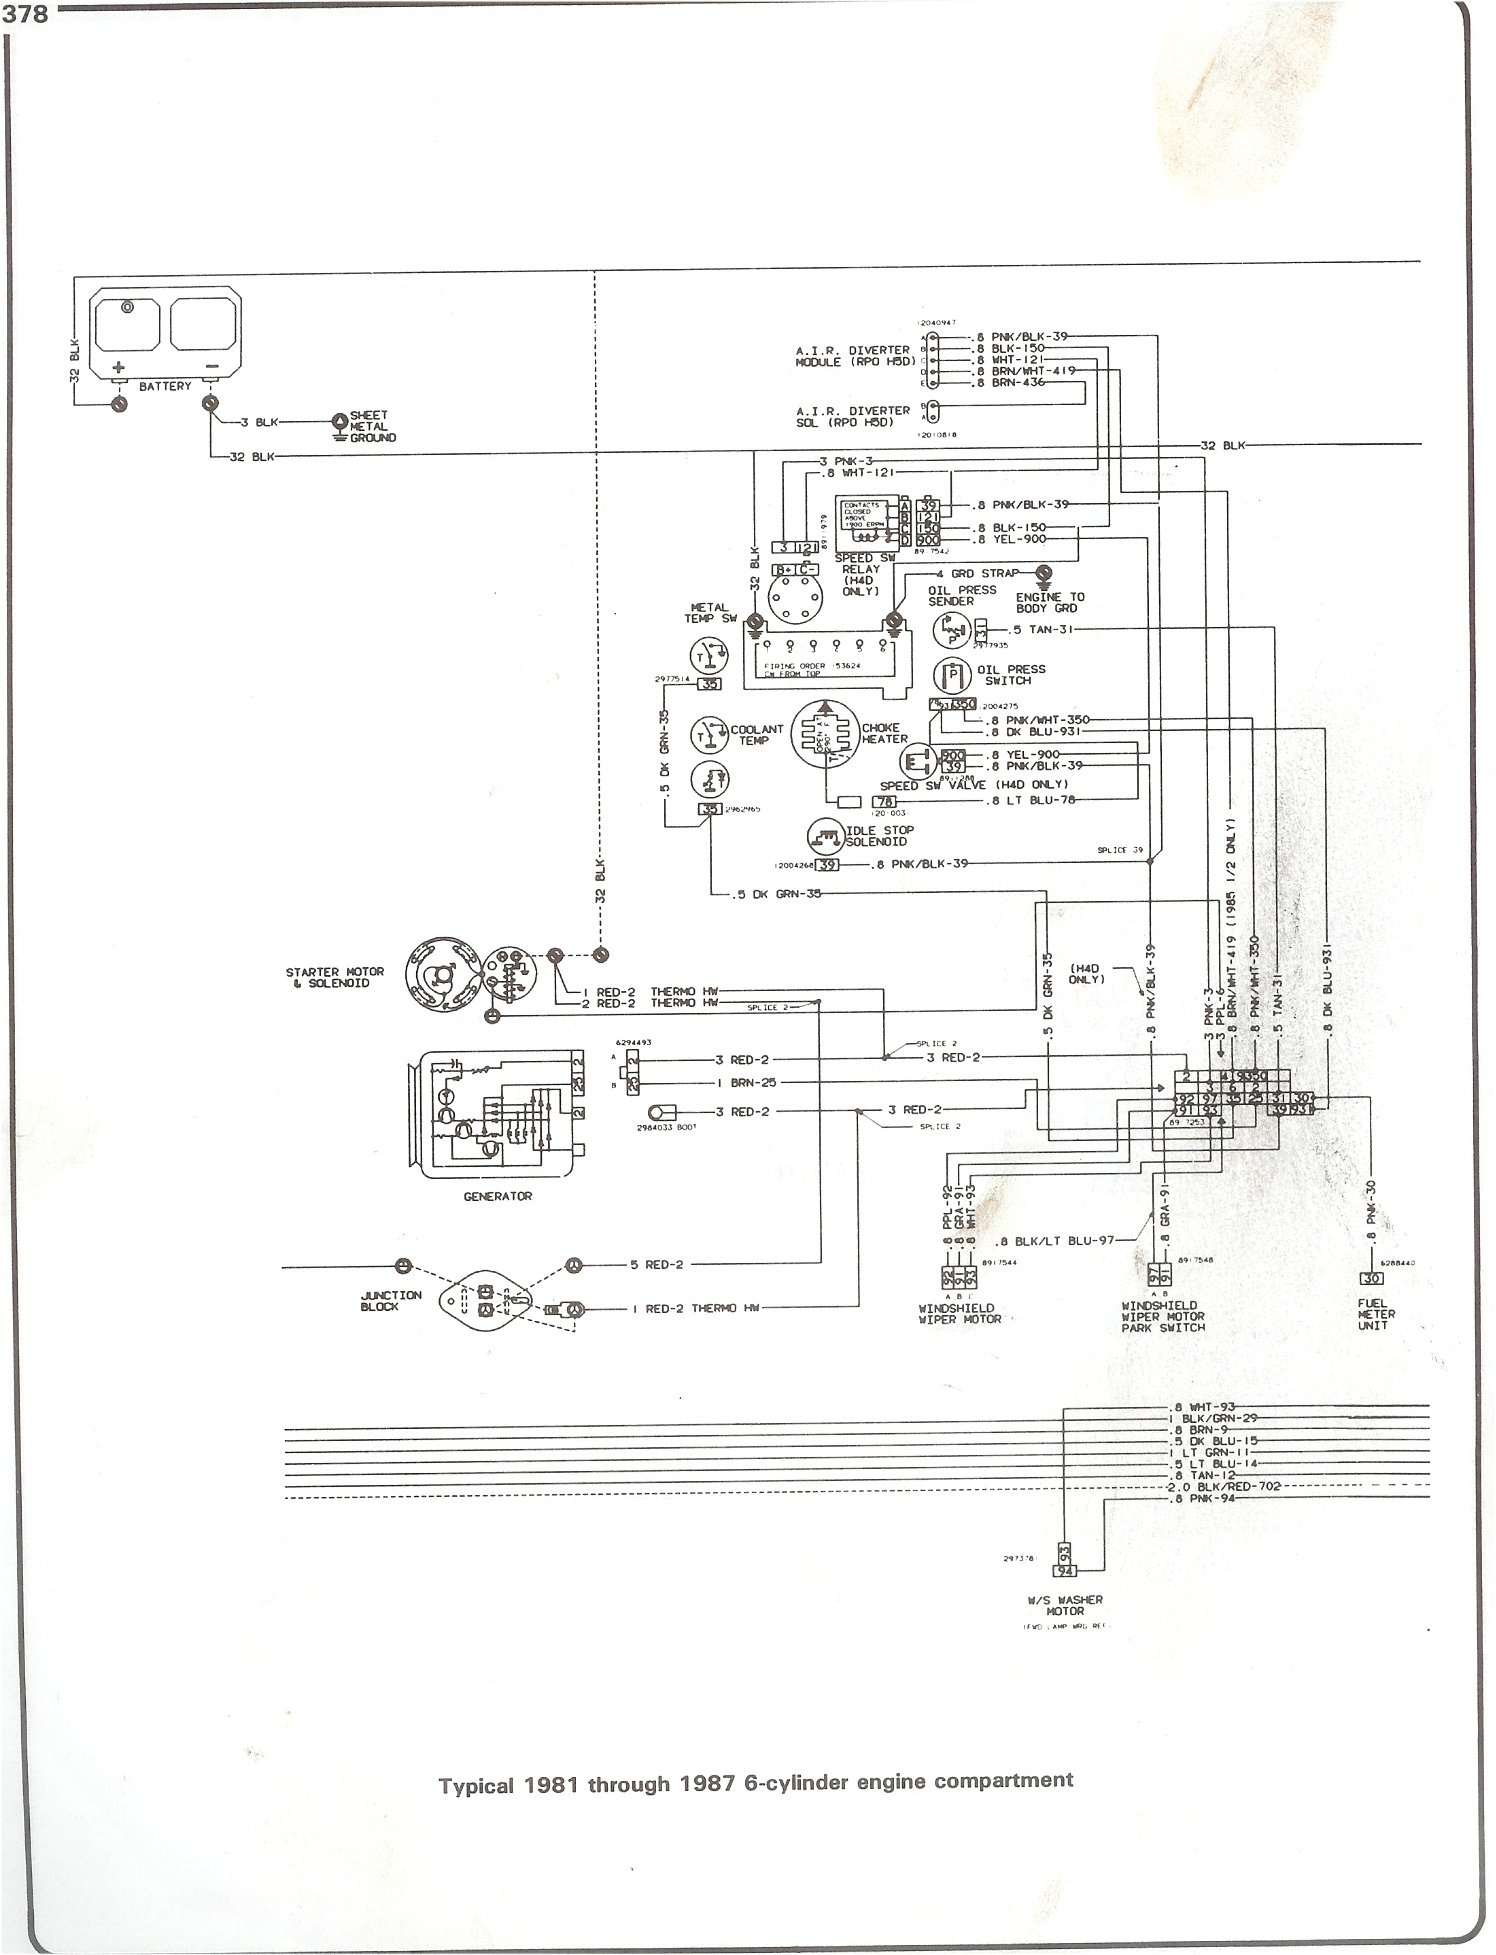 1977 Chevy Truck Ignition Wiring Diagram Just Wiring Data Ignition Switch Wiring  Diagram Chevrolet Ignition Wiring Diagram 1974